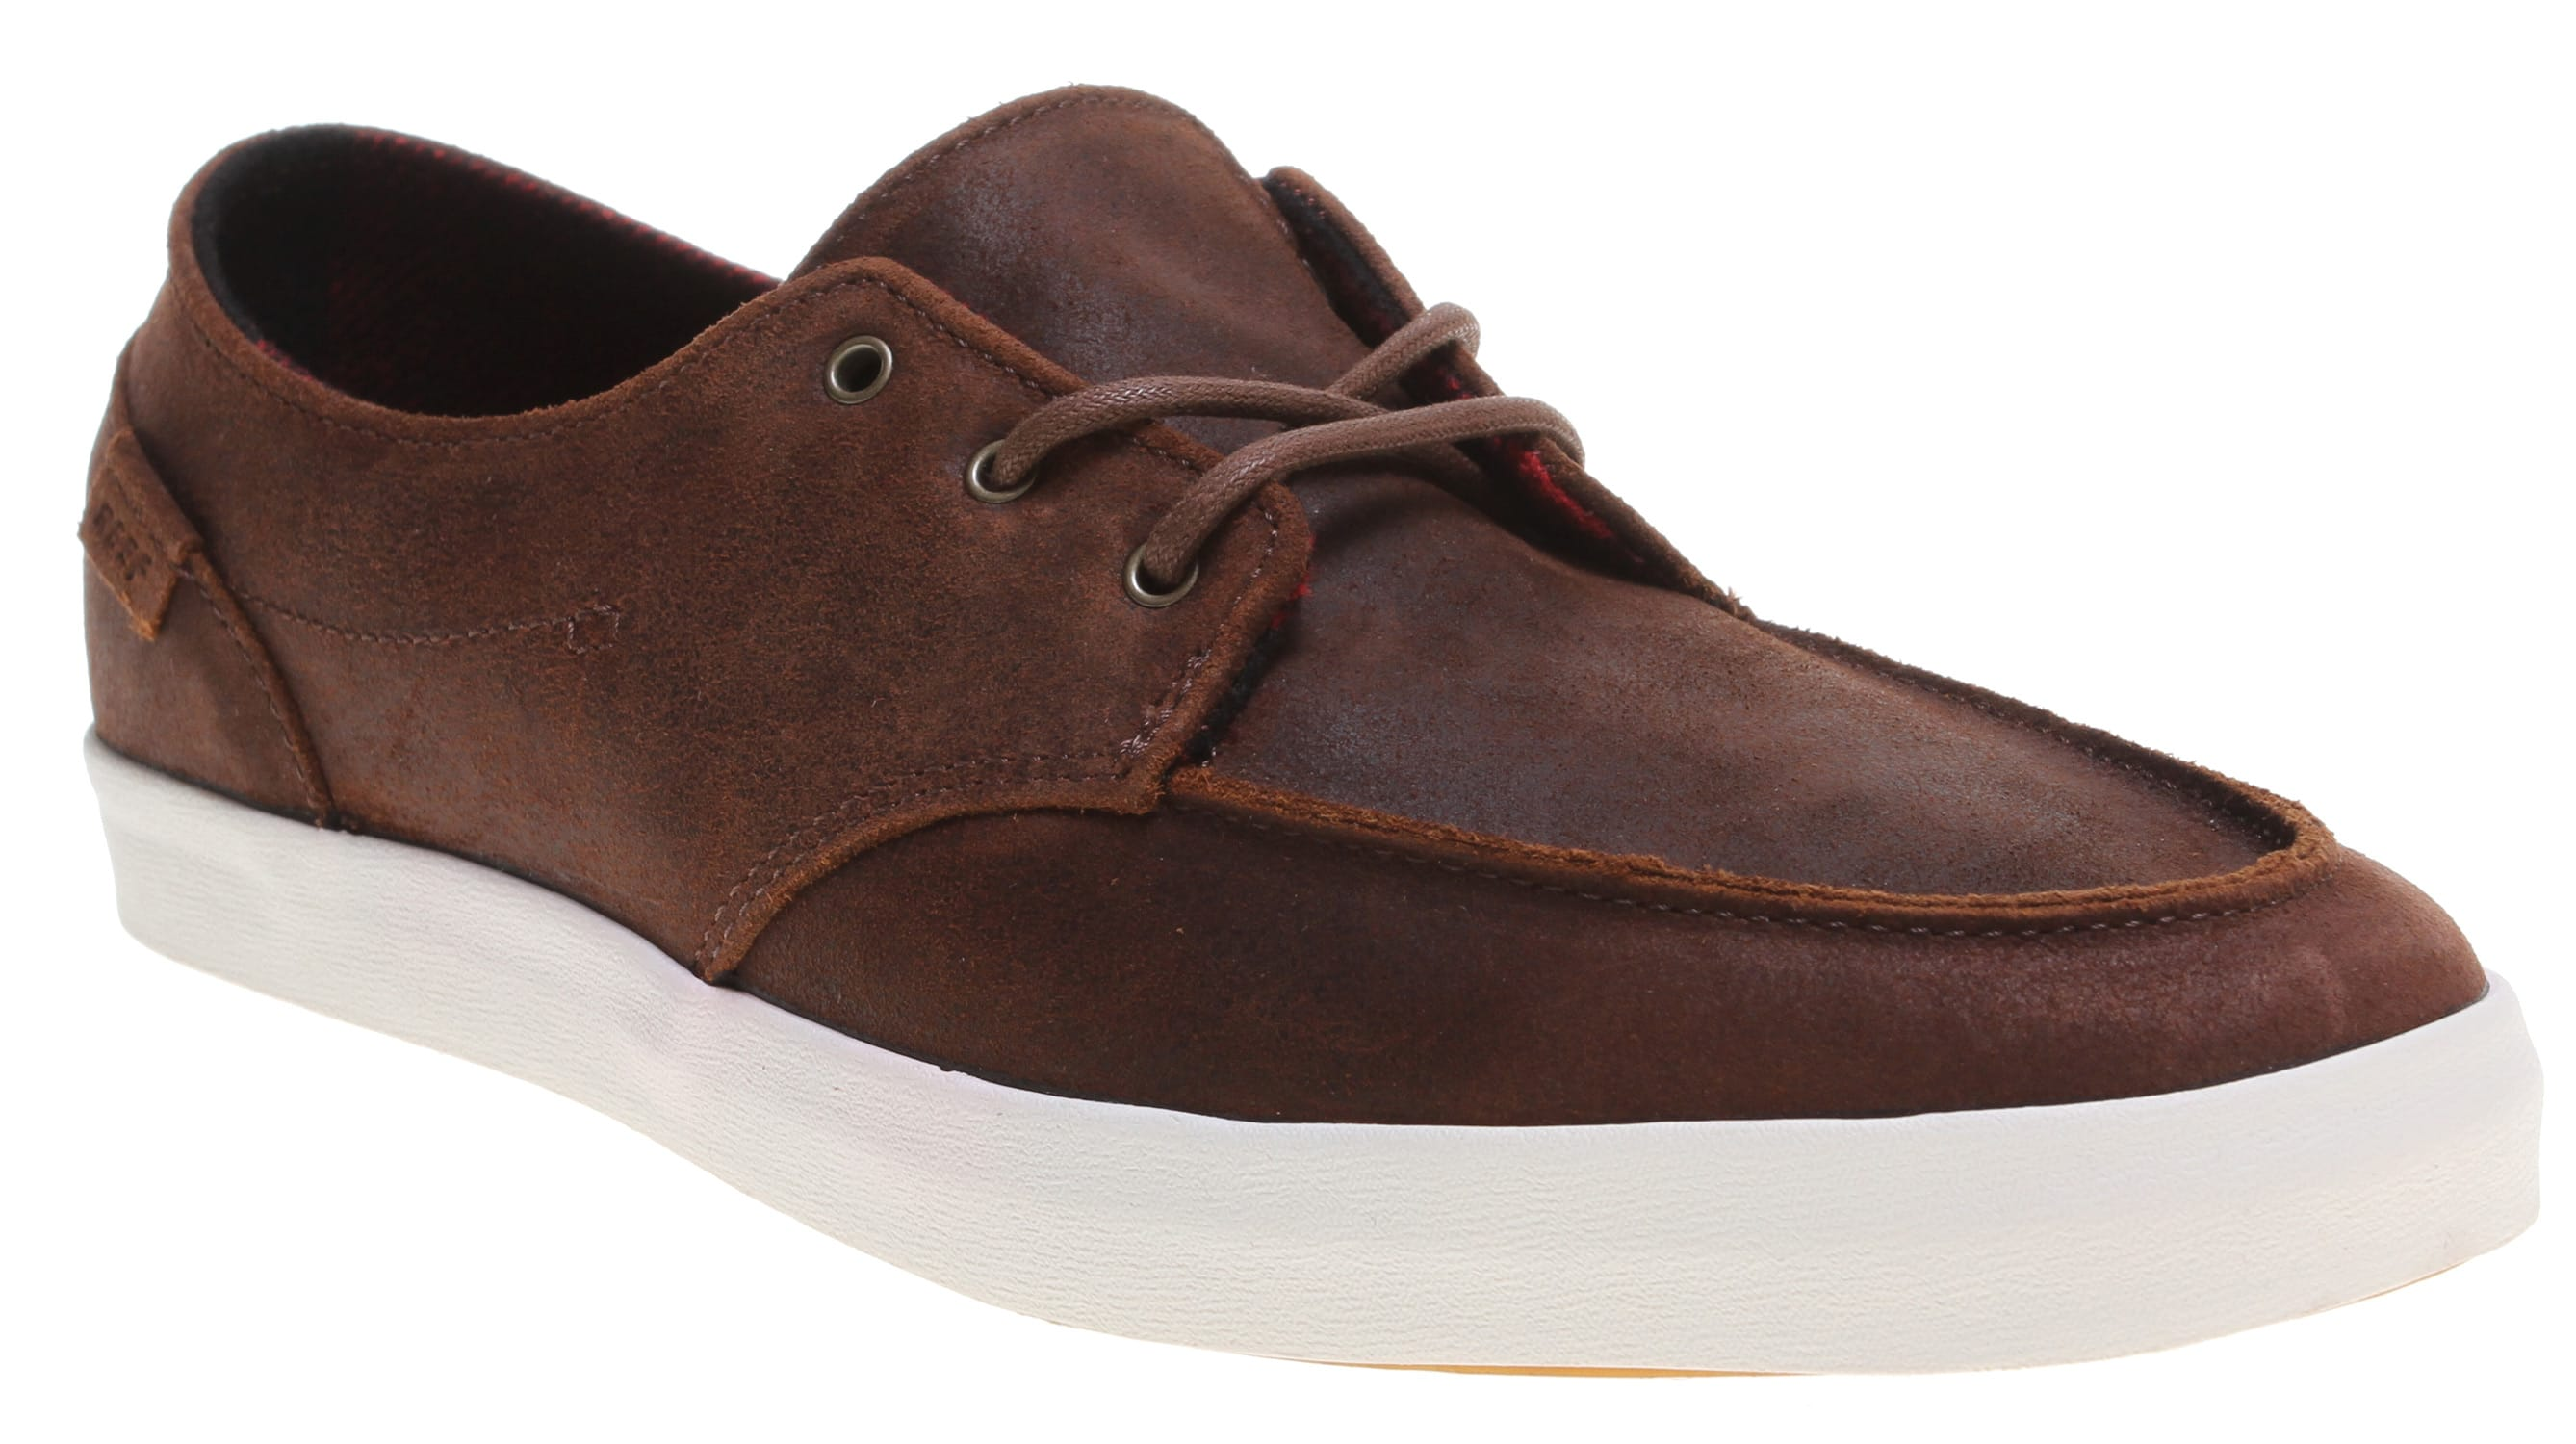 0627ad045800c Reef Deckhand 2 Leather Shoes - thumbnail 2